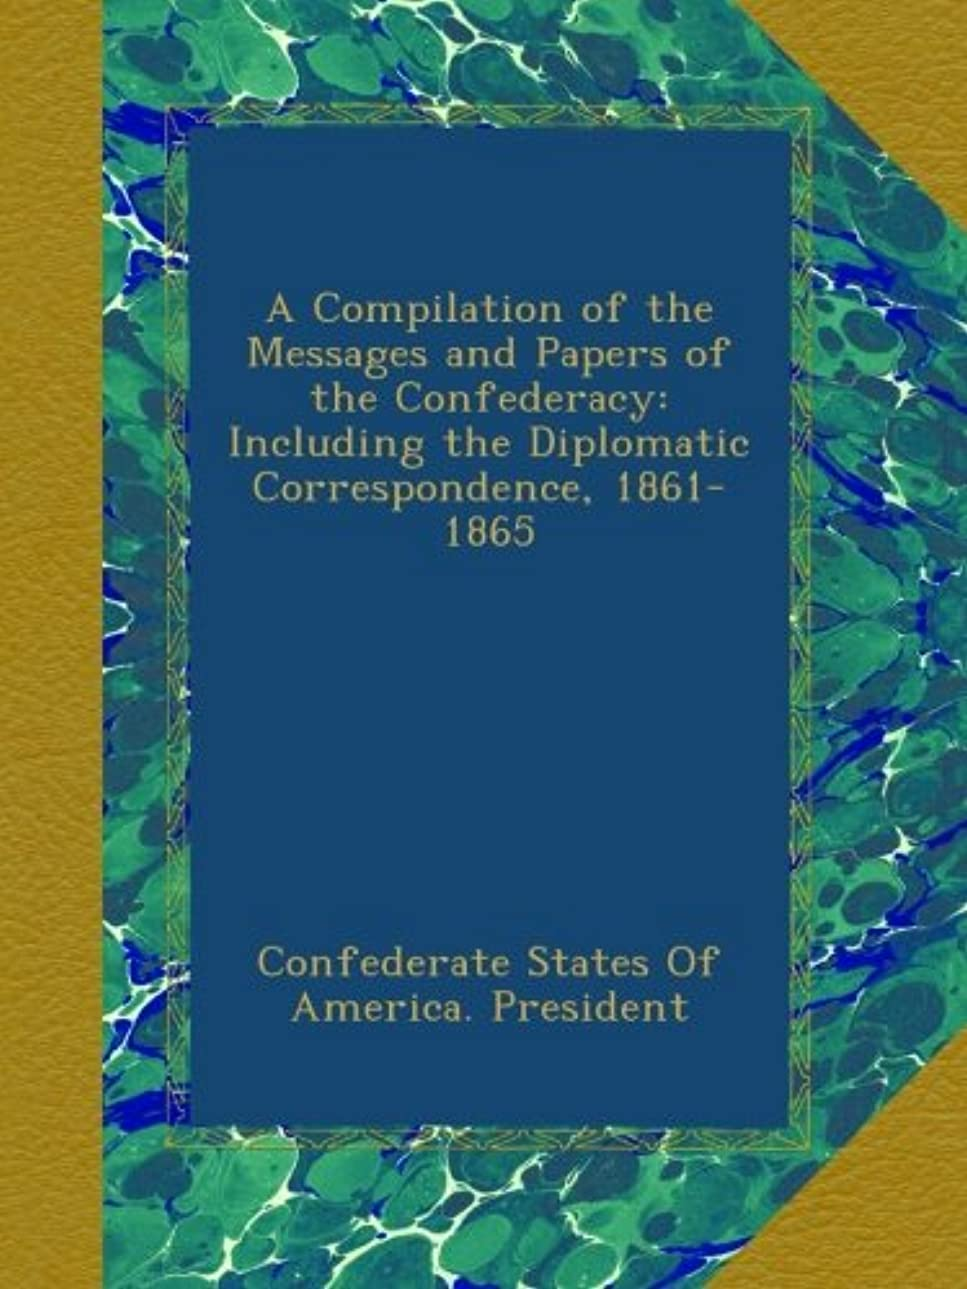 地下鉄トリップトーンA Compilation of the Messages and Papers of the Confederacy: Including the Diplomatic Correspondence, 1861-1865